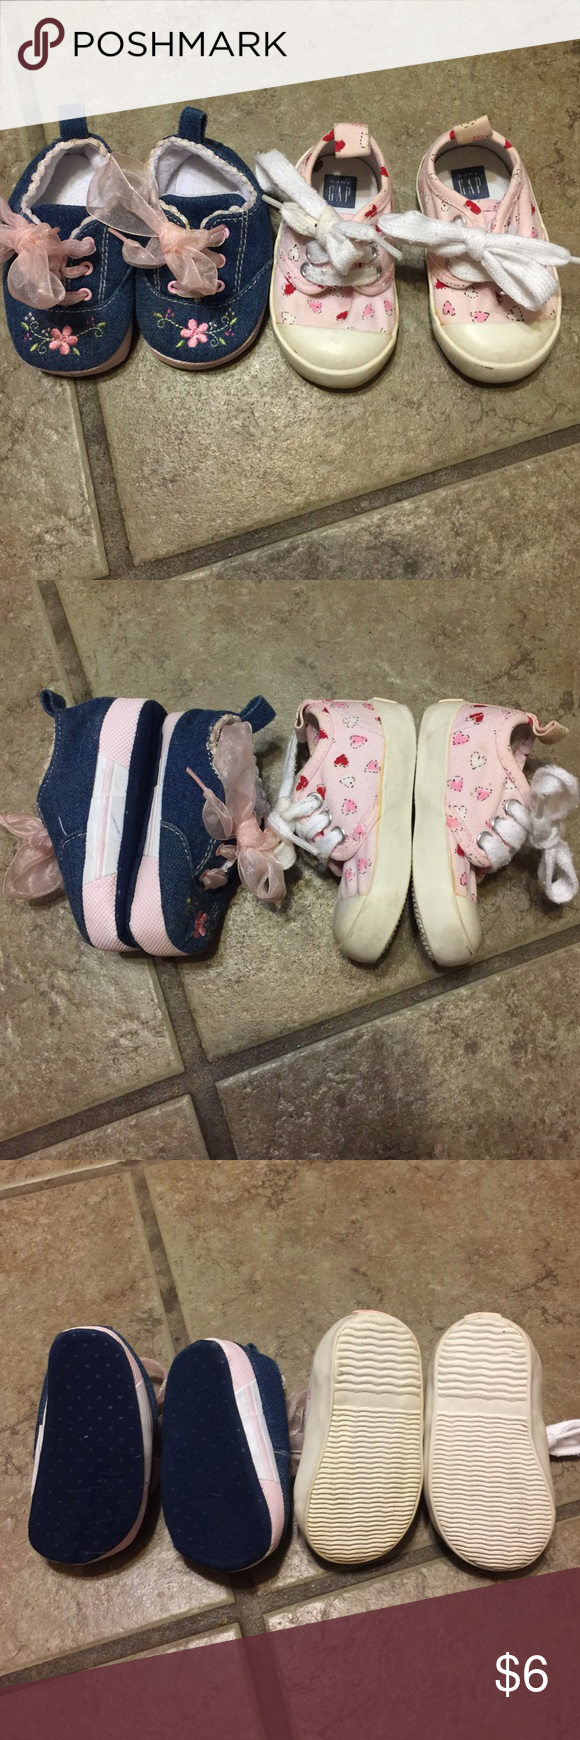 GIRLS INFANT SHOES Denim size 2 soft infant shoes with embroidered flowers at toes.  Size 3 firm bottom Baby Gap heart shoes.  Normal wear.  Smoke free home Shoes Sneakers